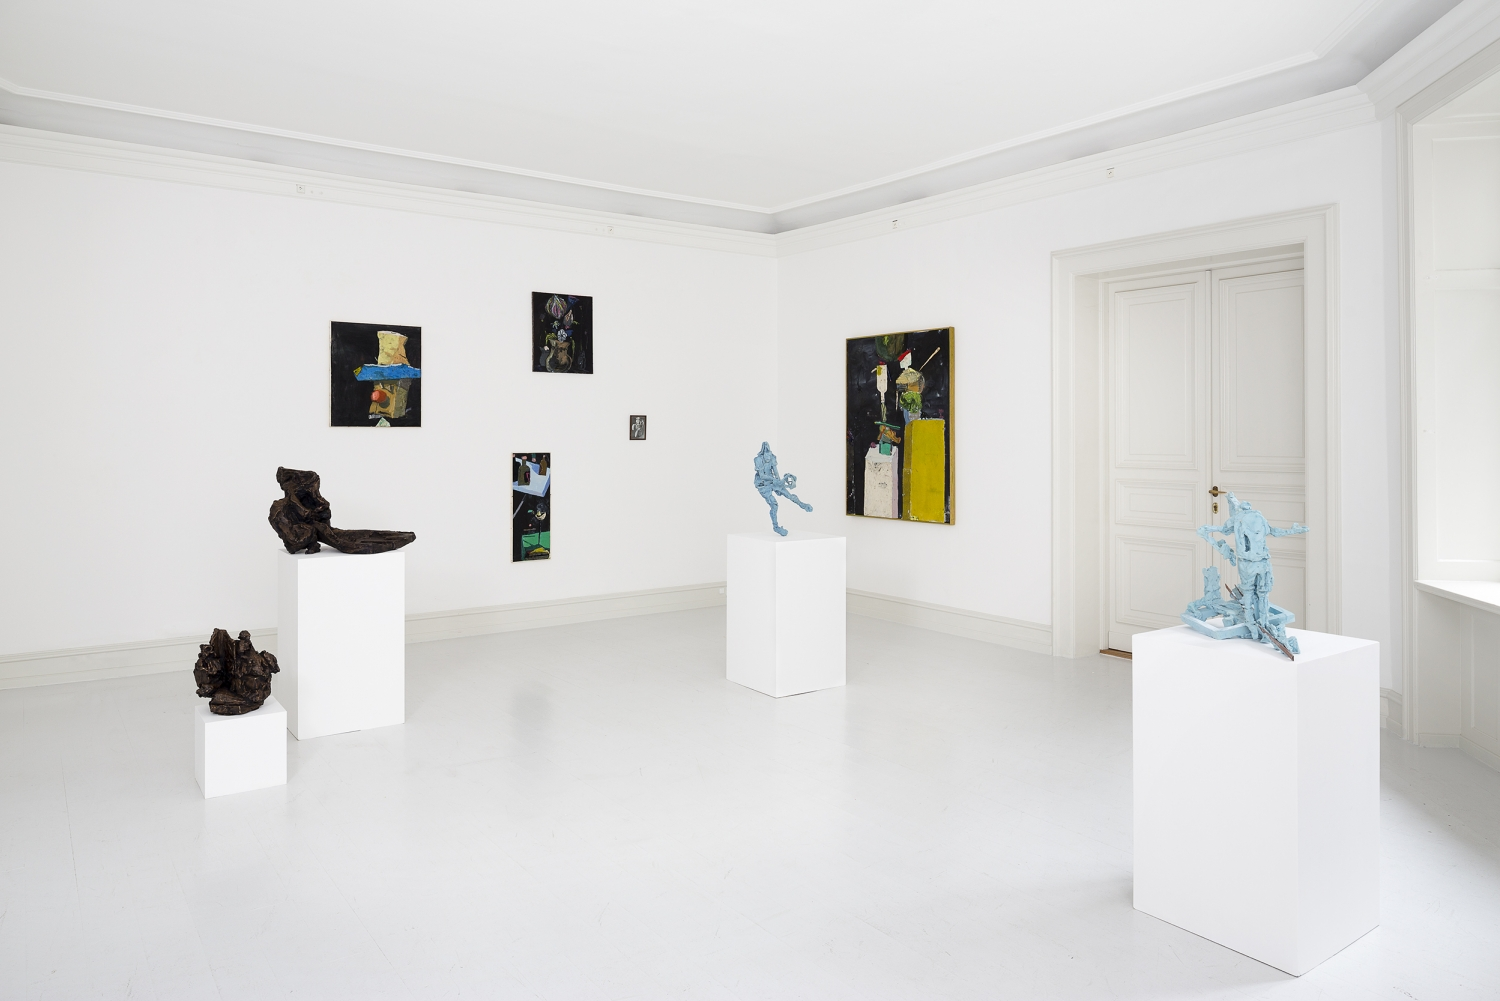 Lucy Teasdale - Installation view, Fritz Bornstück & Lucy Teasdale, One for the Birds, Galerie Mikael Andersen, Copenhagen (photo: Jan Søndergaard)